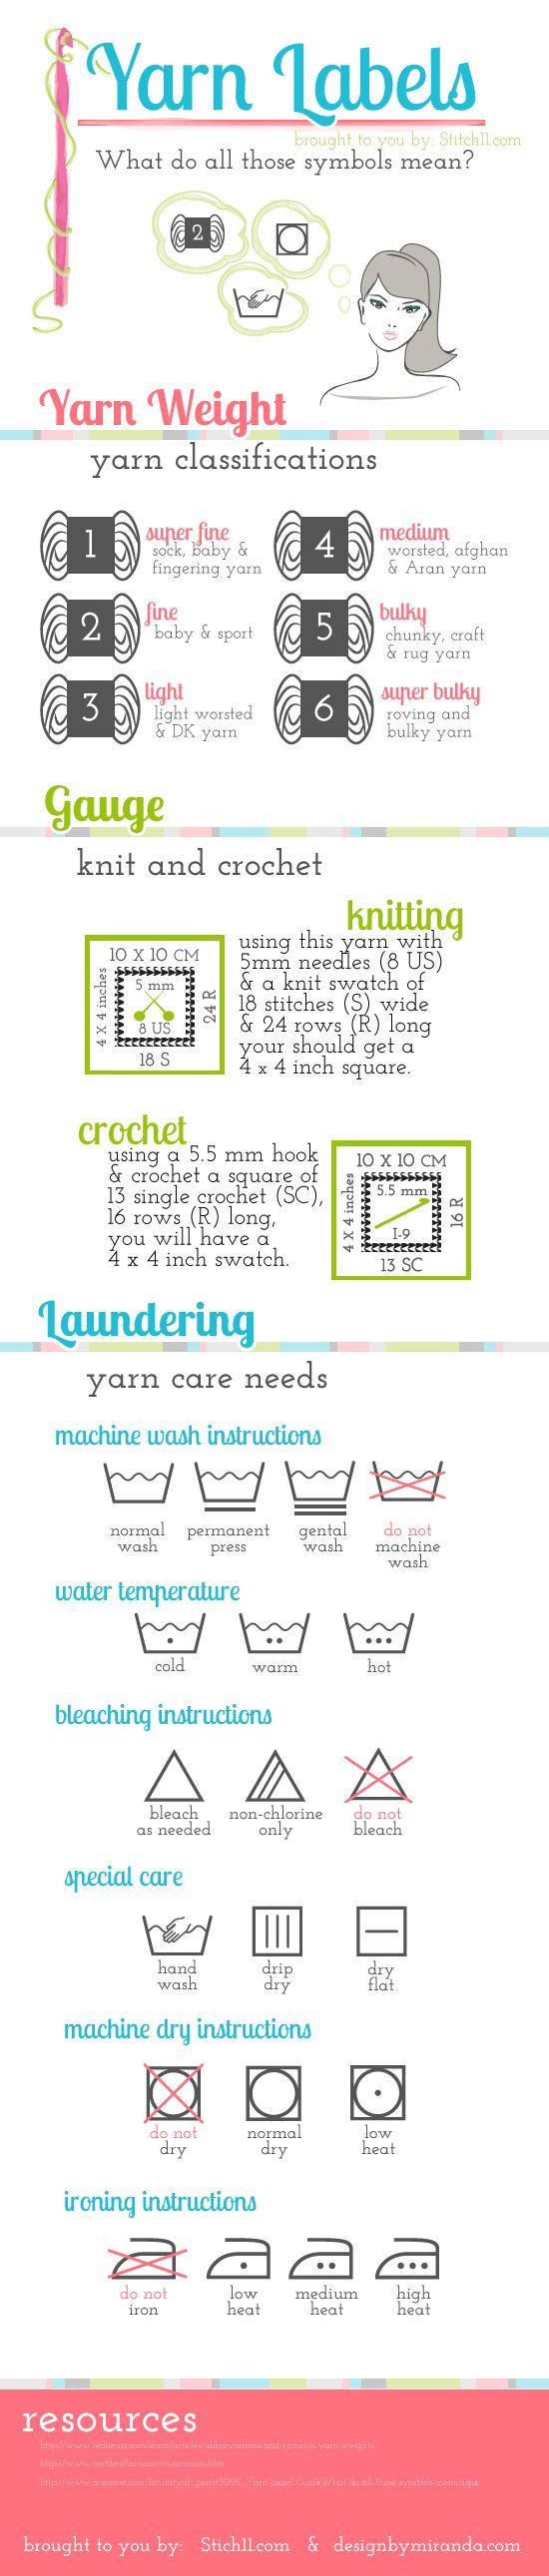 Awesome Yarn Infographic